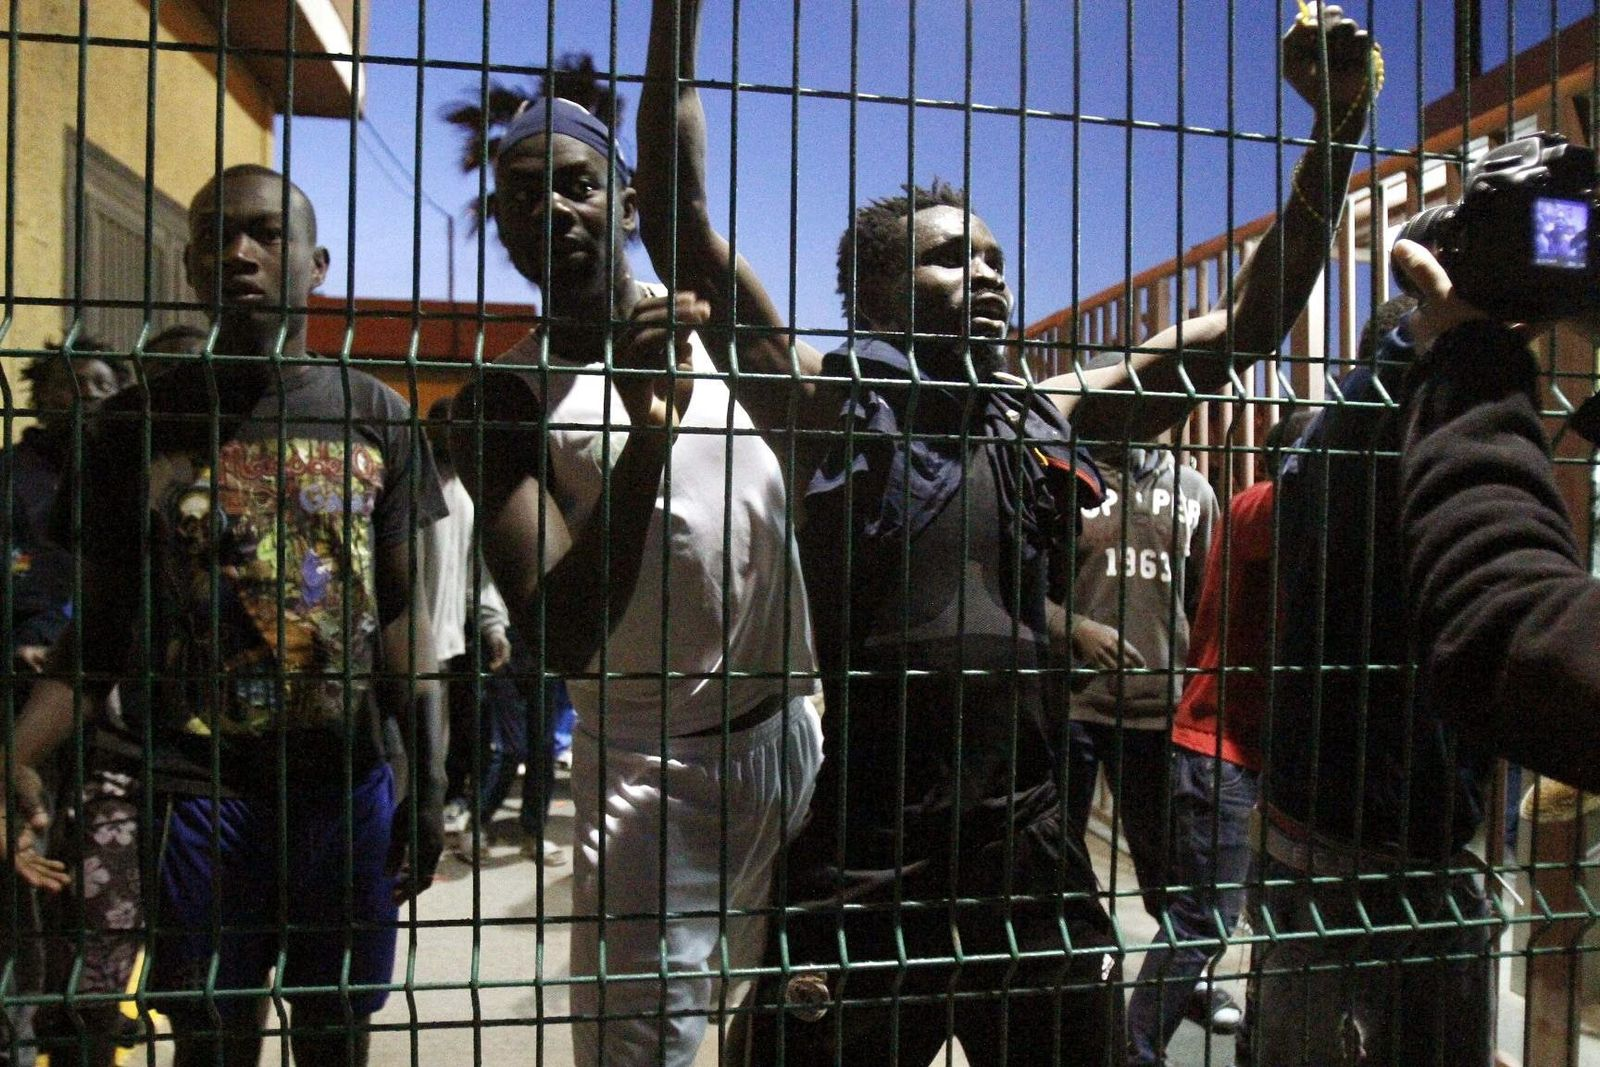 Migrants try to storm Spanish enclave in North Africa